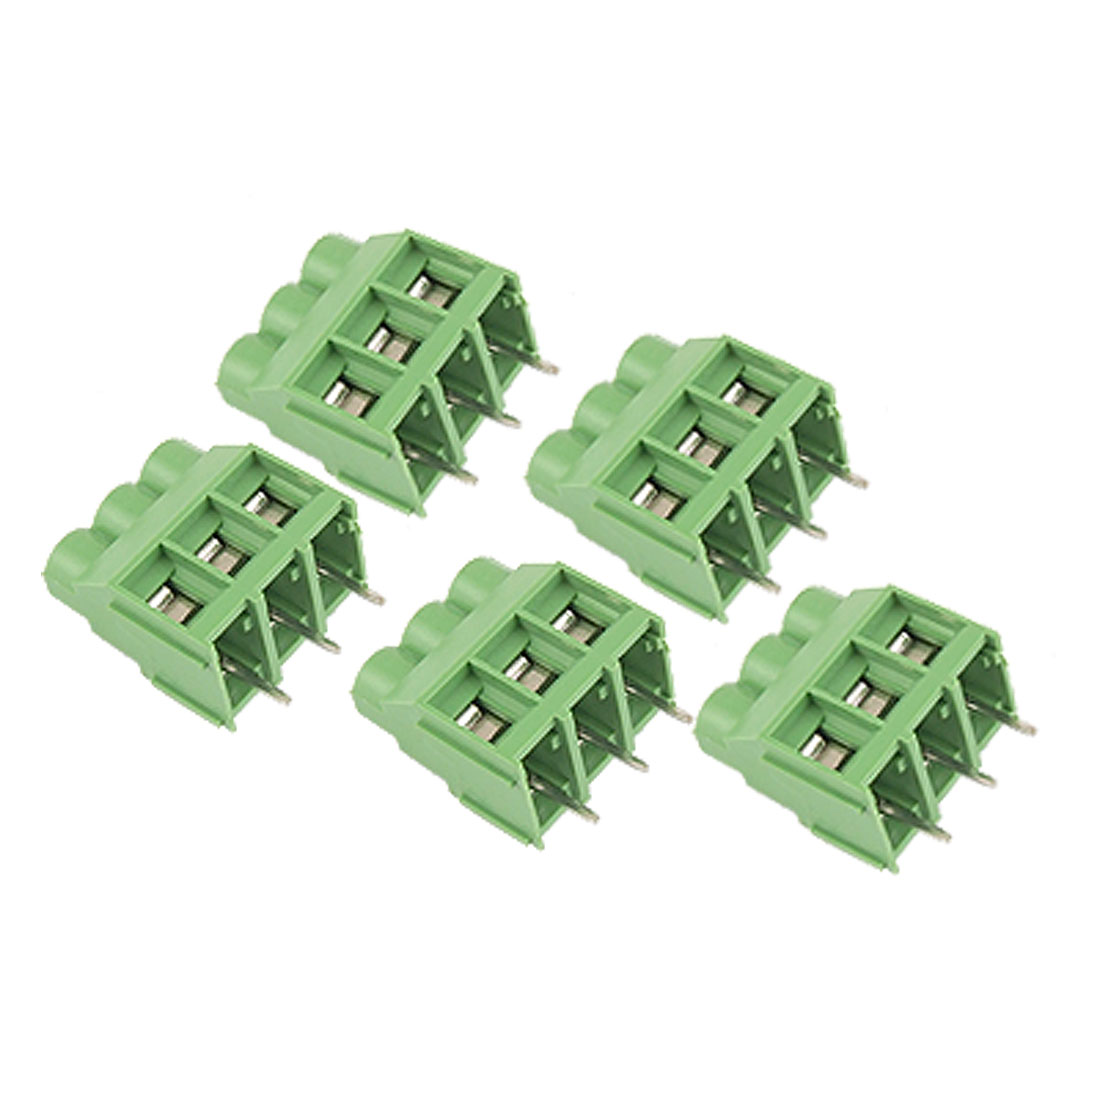 5 Pcs 3 6.25mm Pitch Screw Terminal Block Connector 30A